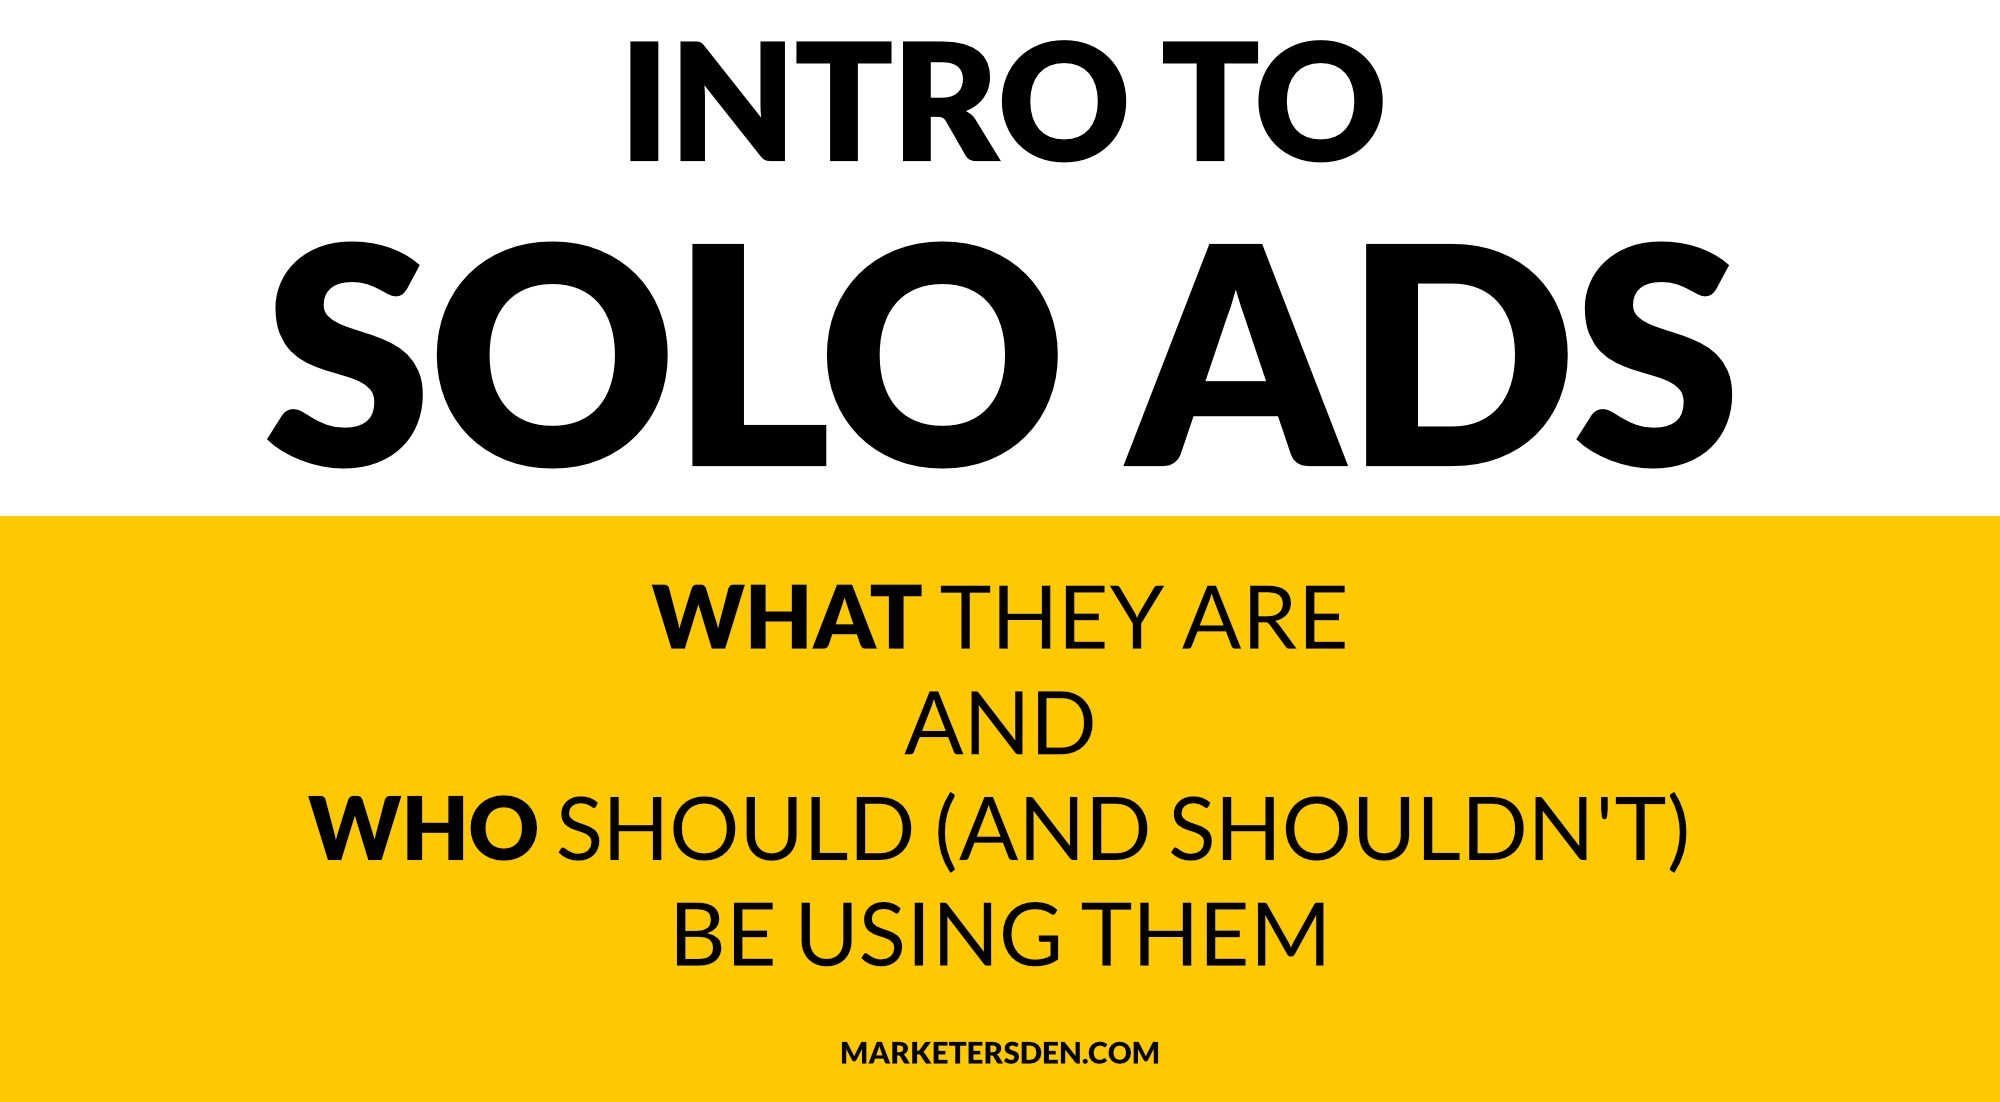 intro to solo ads: what they are and who should (and shouldn't) be using them